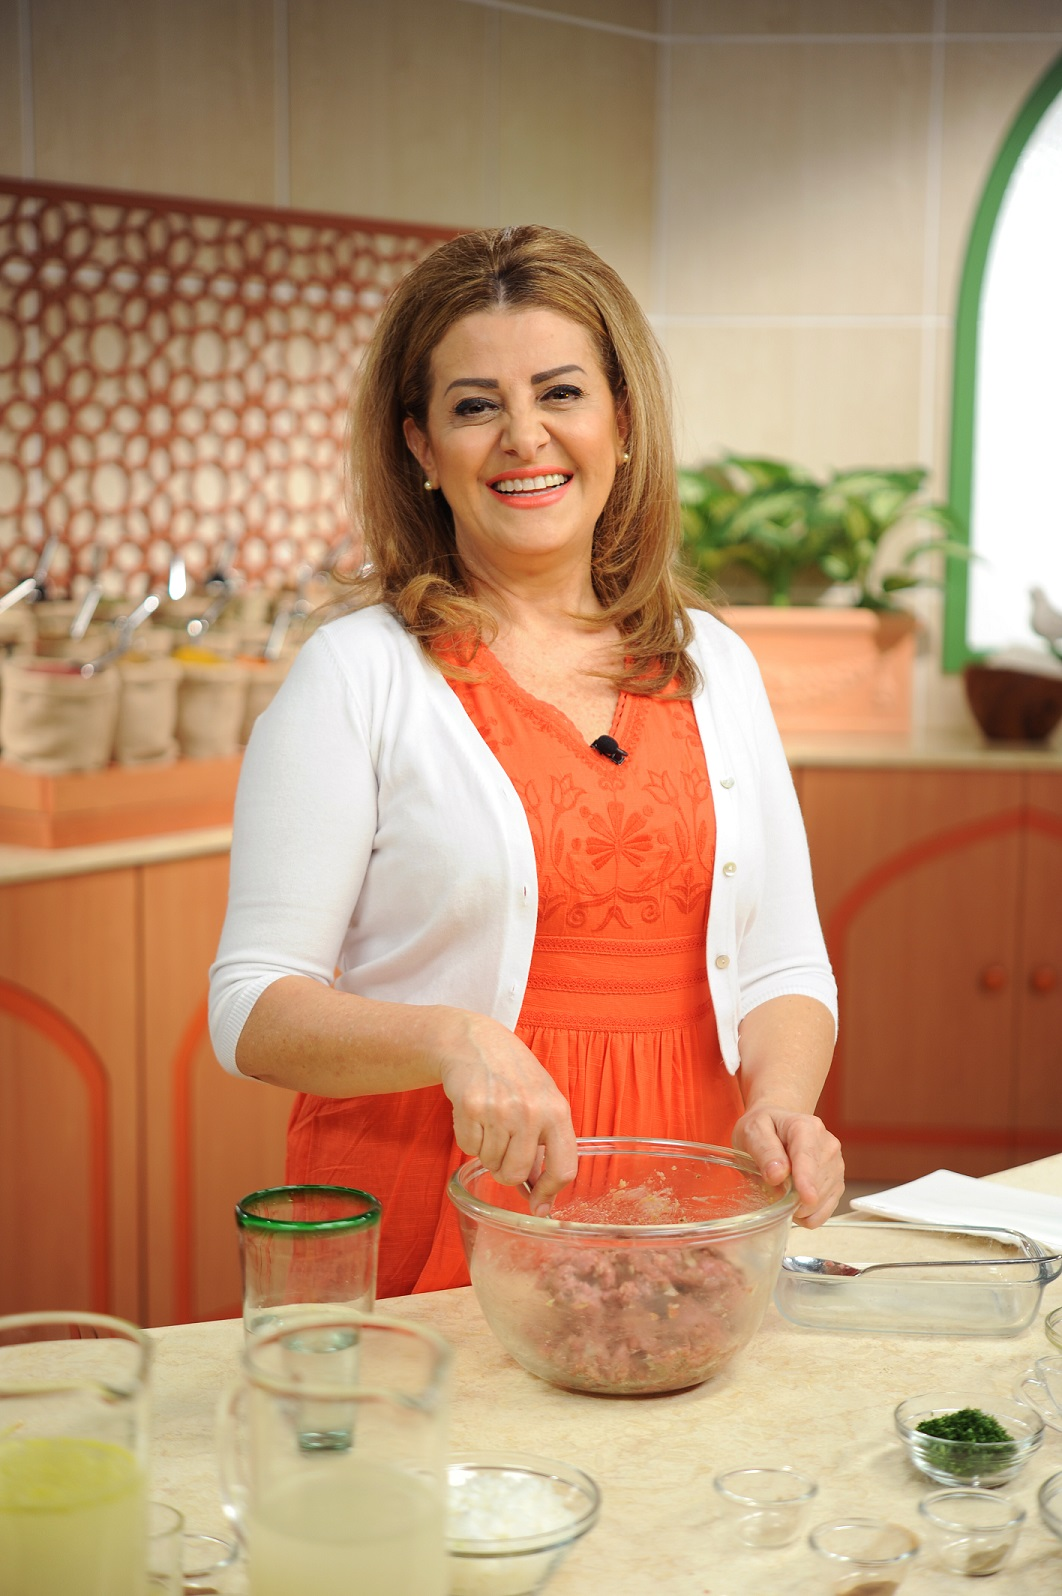 Darine el khatib archives hotel news me fatafeat set to welcome four chefs to qatar international food festival forumfinder Image collections